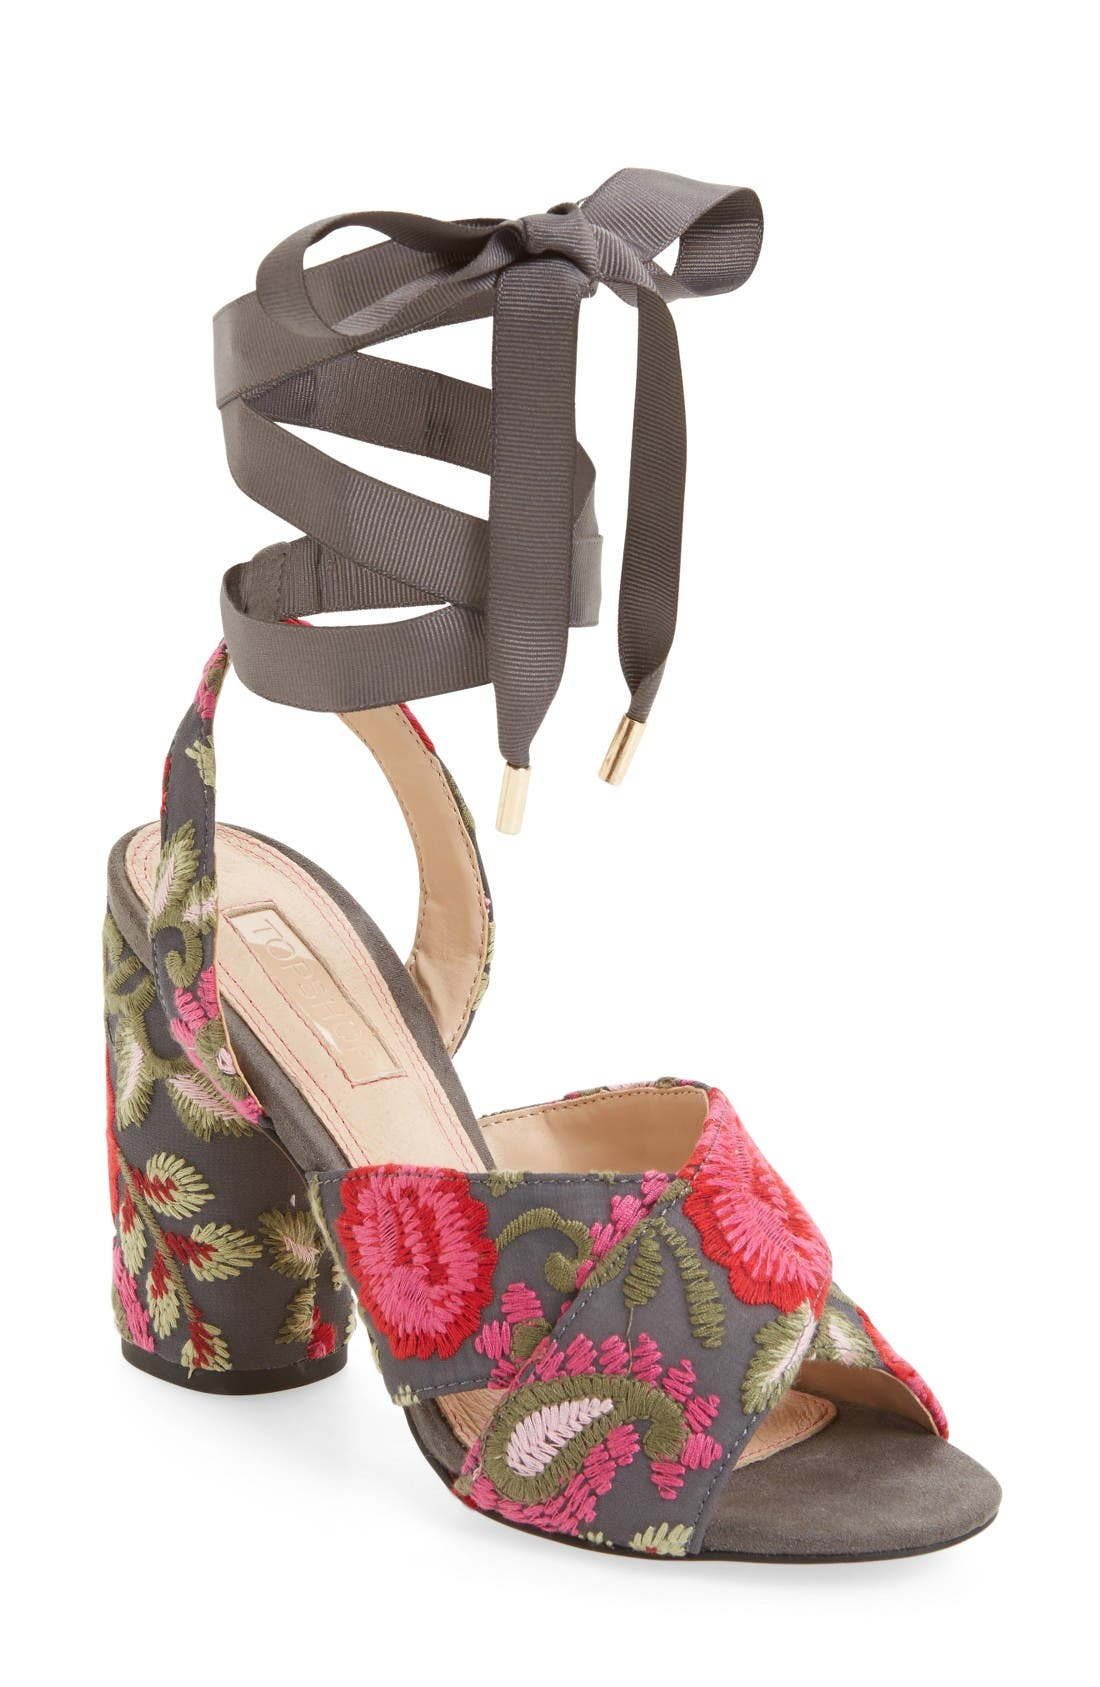 Main Image - Topshop Reena Embroidered Sandal (Women)